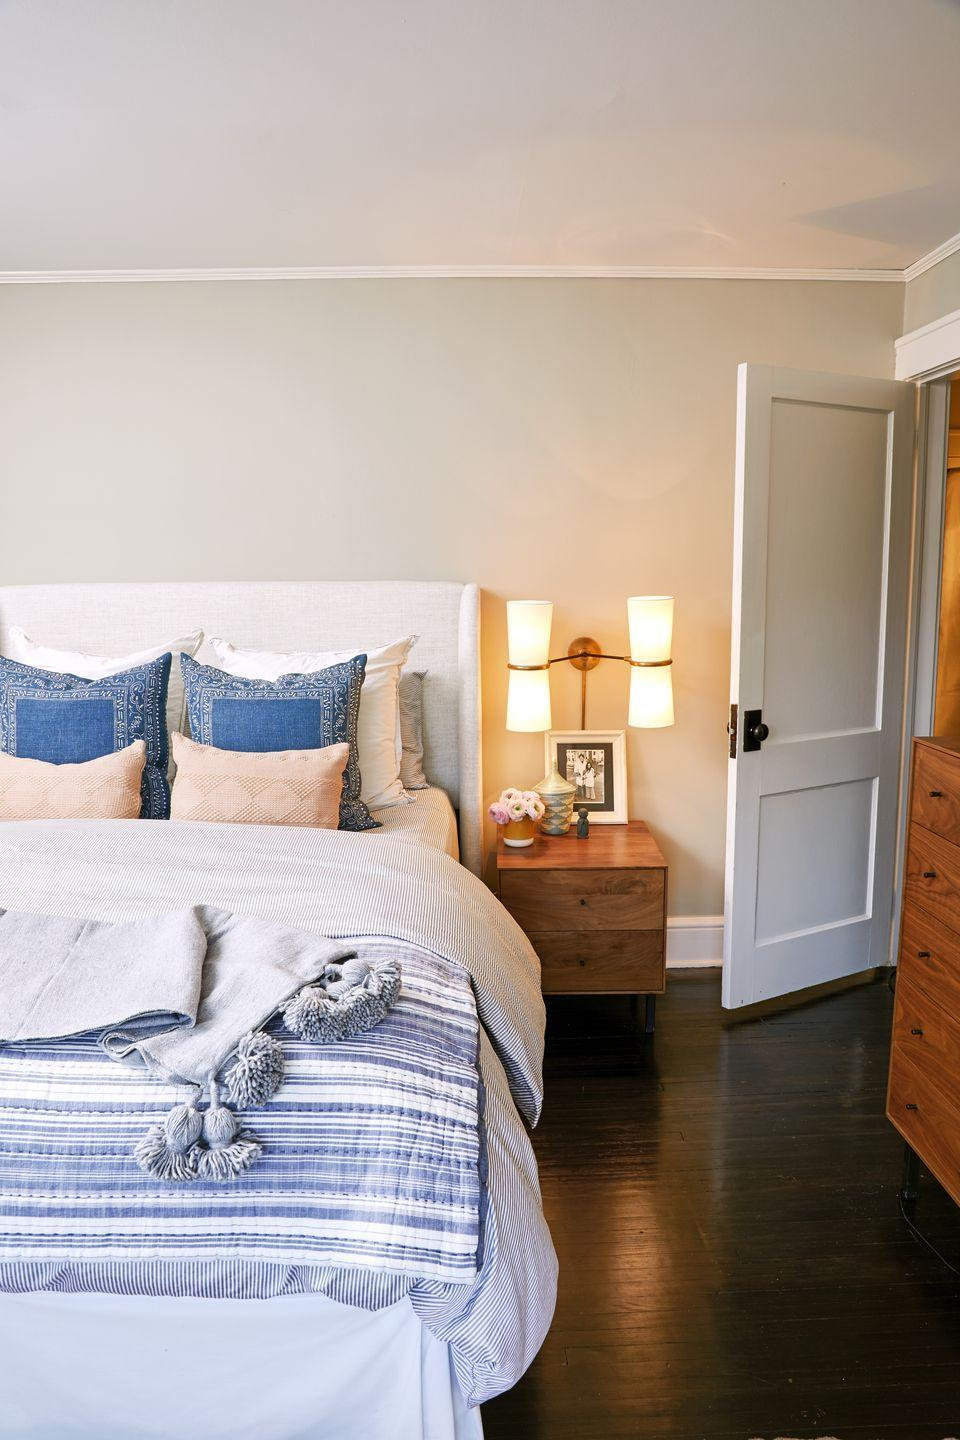 <p>Make beige walls looks less <em>blah</em>. Fresh linens, throw pillows, and a tasseled blanket upgrade an otherwise neutral backdrop. </p>